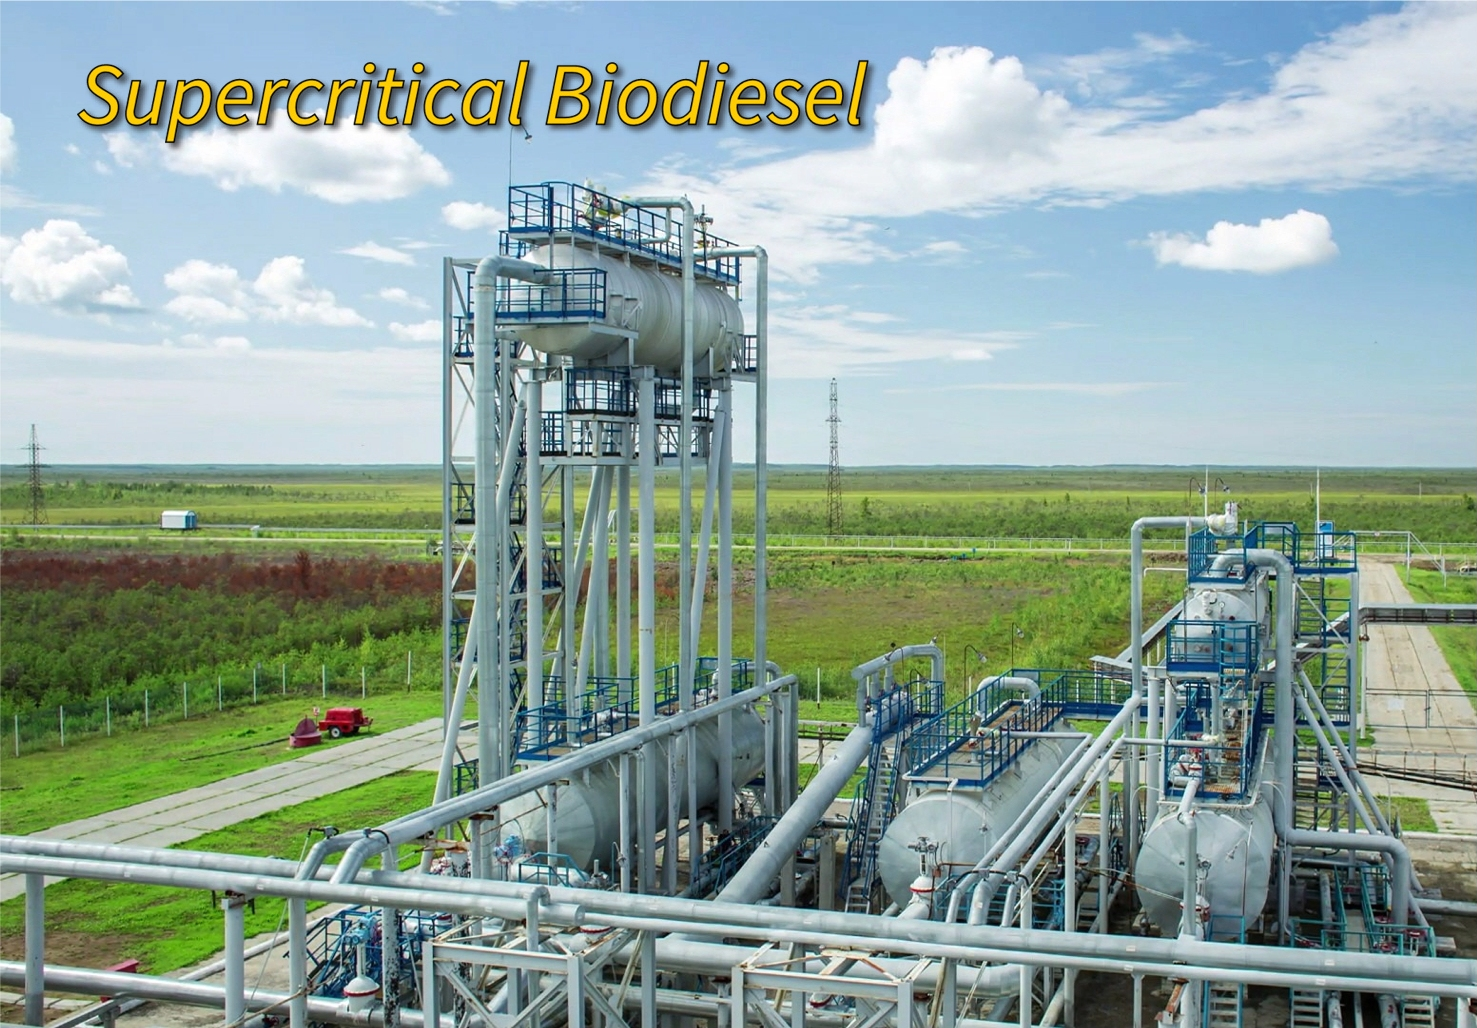 Top pic Supercritical heading website green fields